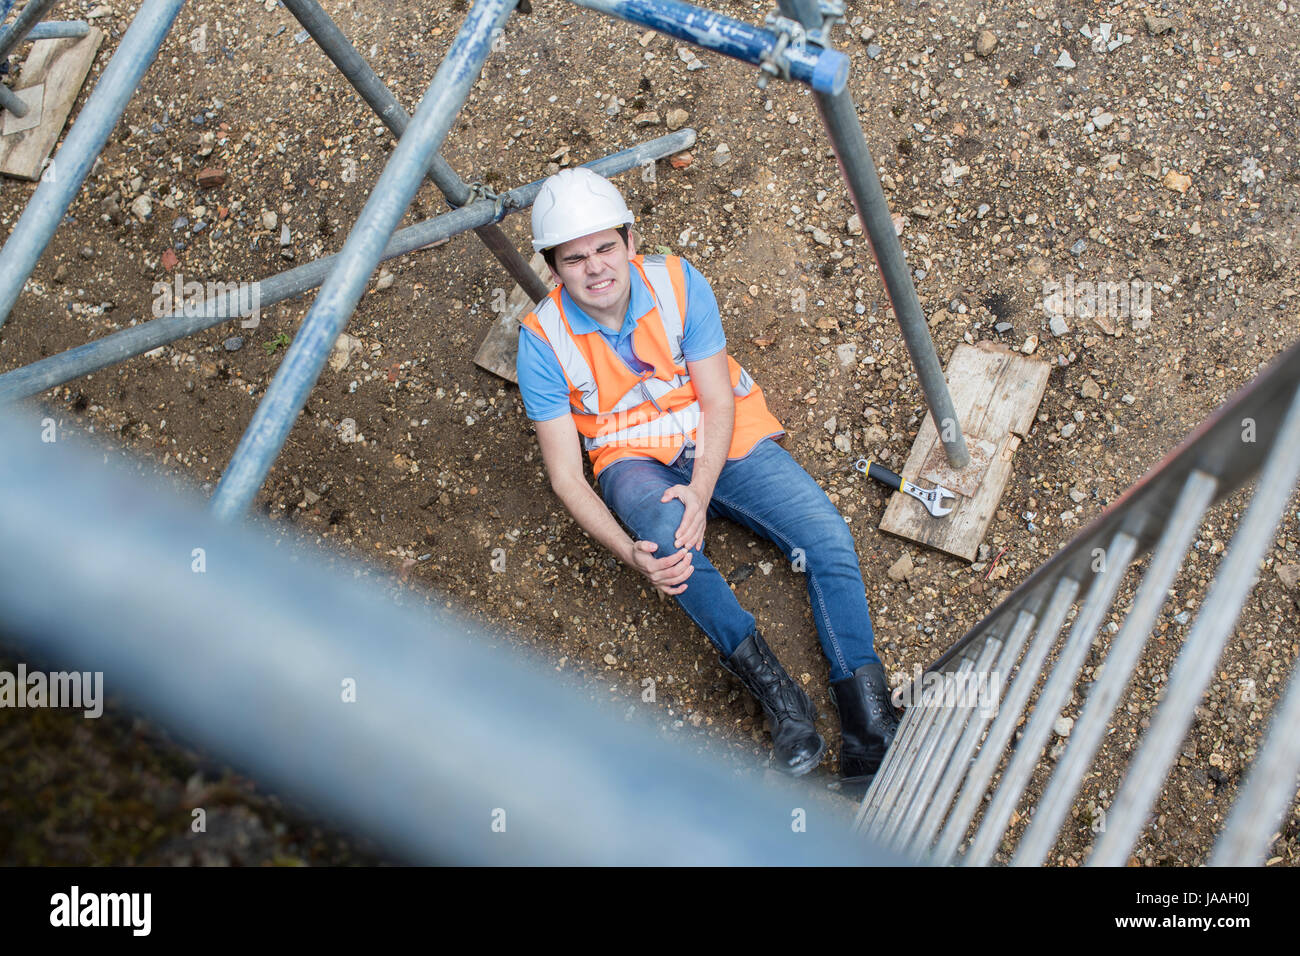 Construction Worker Falling Off Ladder And Injuring Leg - Stock Image